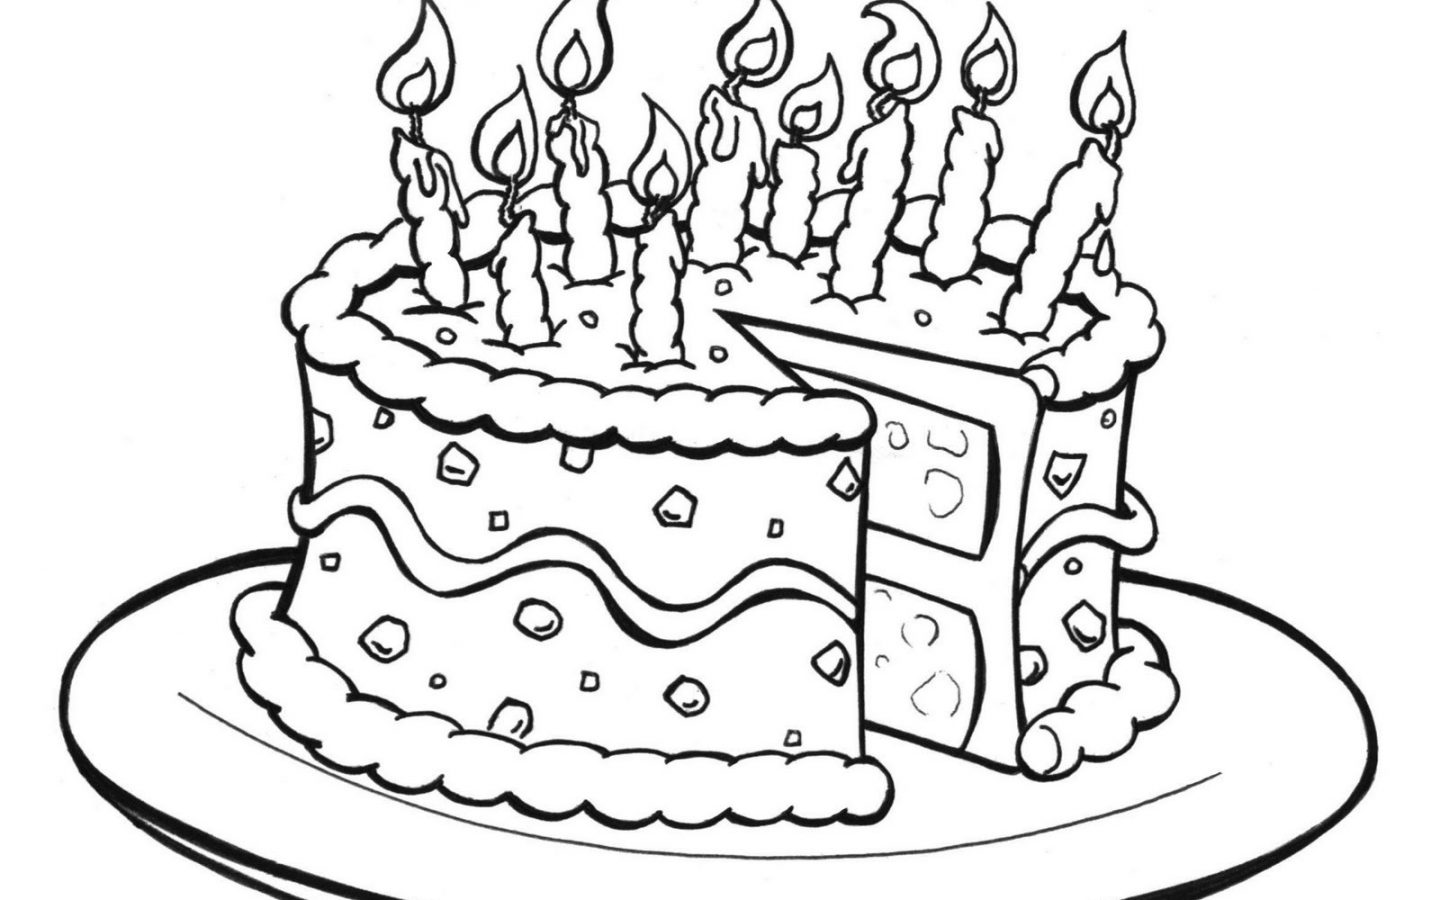 birthday cake coloring pages free ; amazing-birthday-cake-coloring-pages-printable-for-1440x900